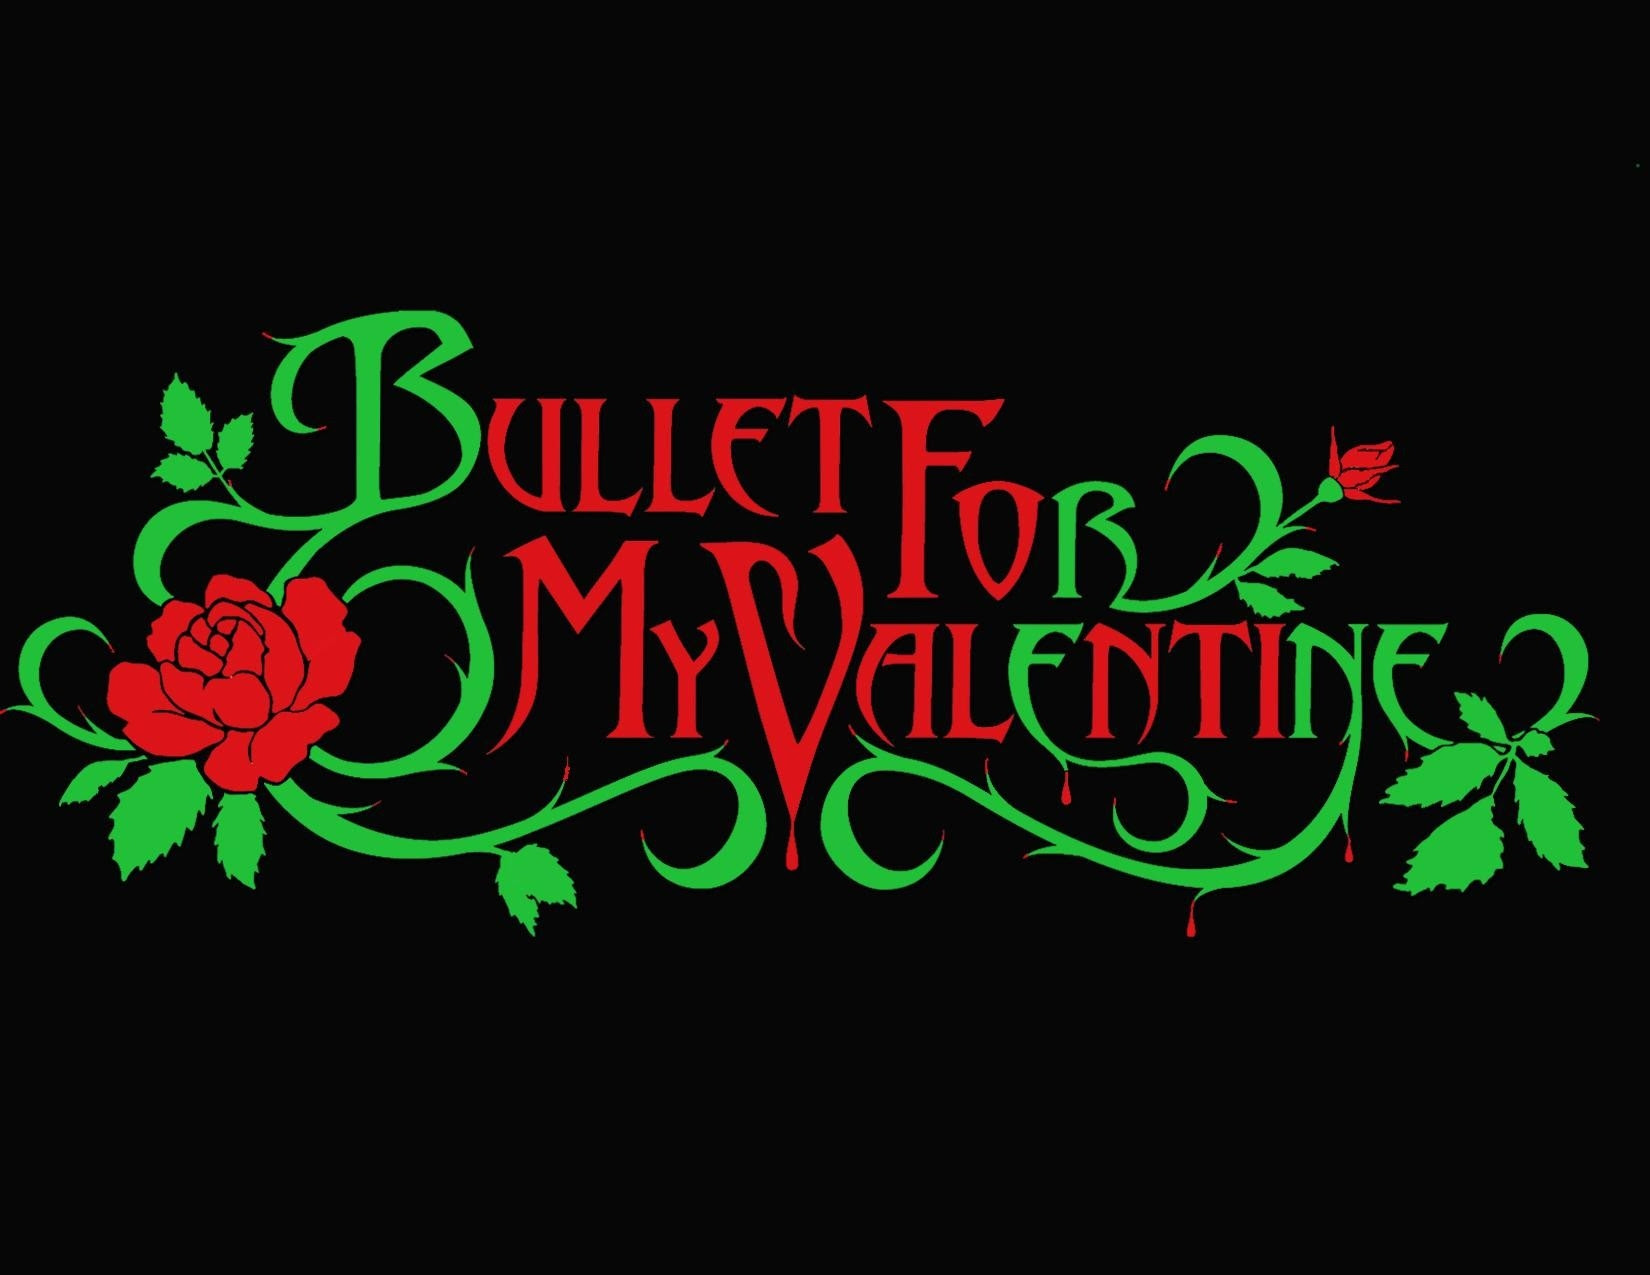 Bullet For My Valentine 1650x1275 Wallpaper High Quality